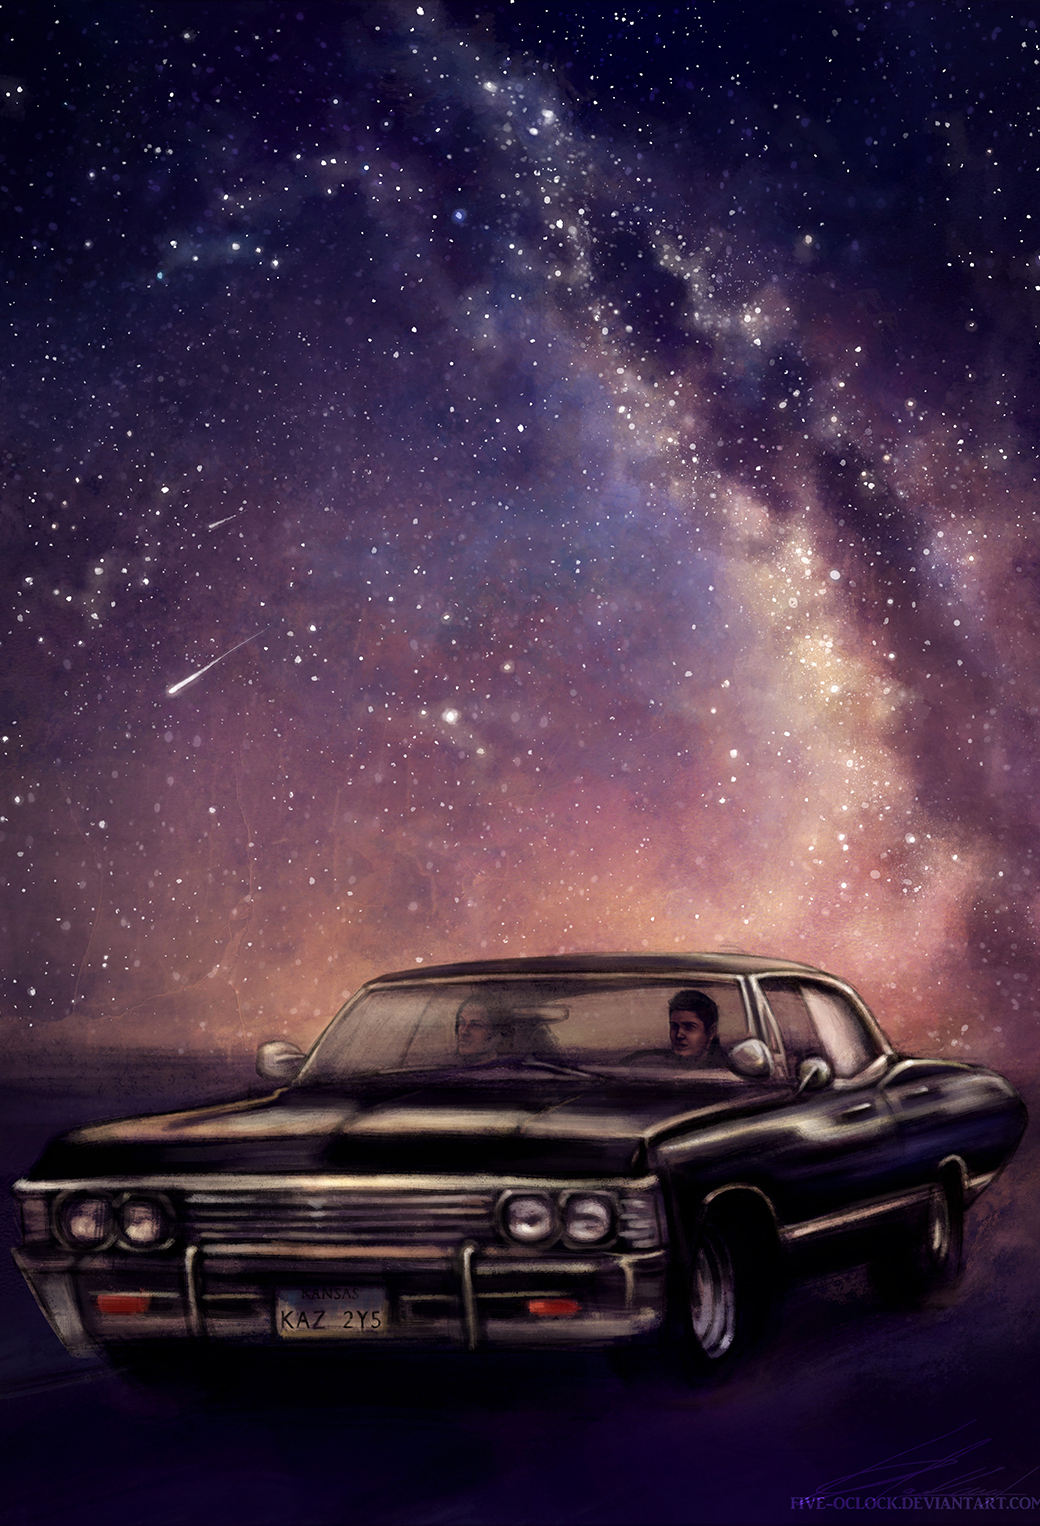 In The Light Supernatural Wallpaper For Iphone X 8 7 6